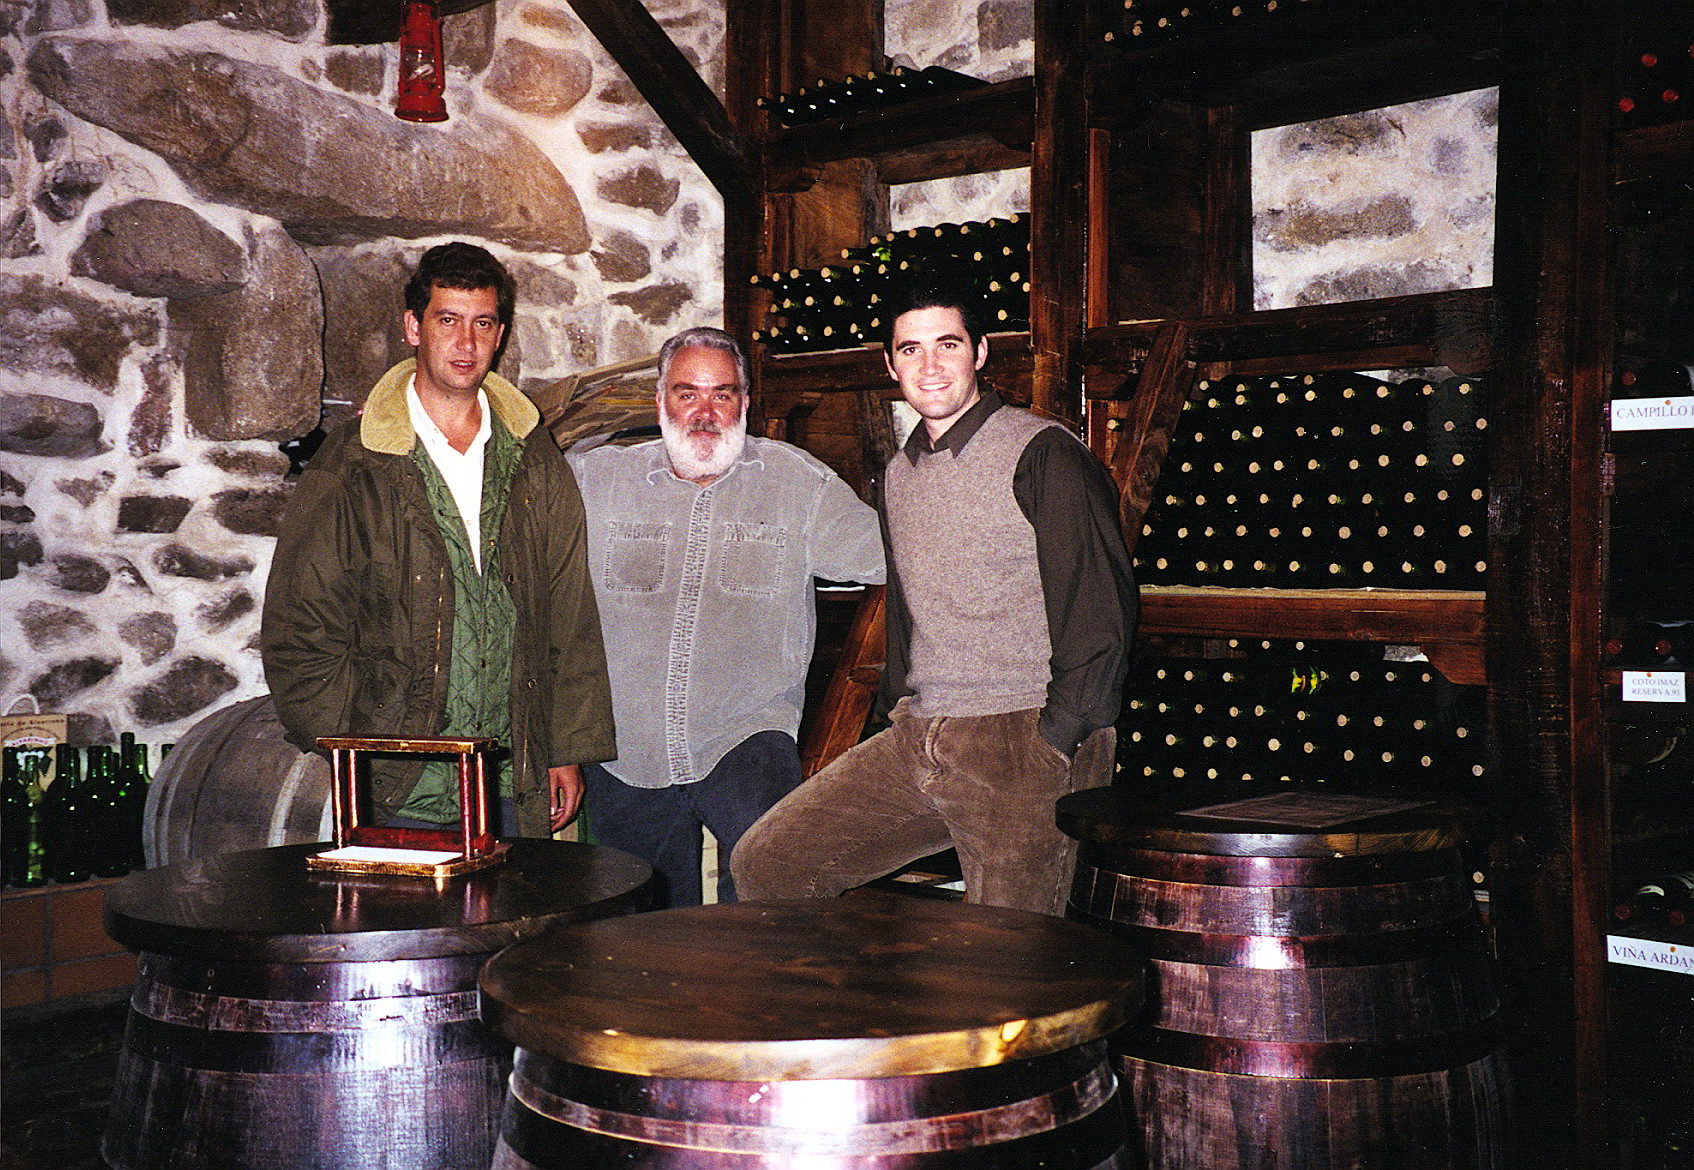 Clint, Marcos and Sean in the wine cellar of a manor house